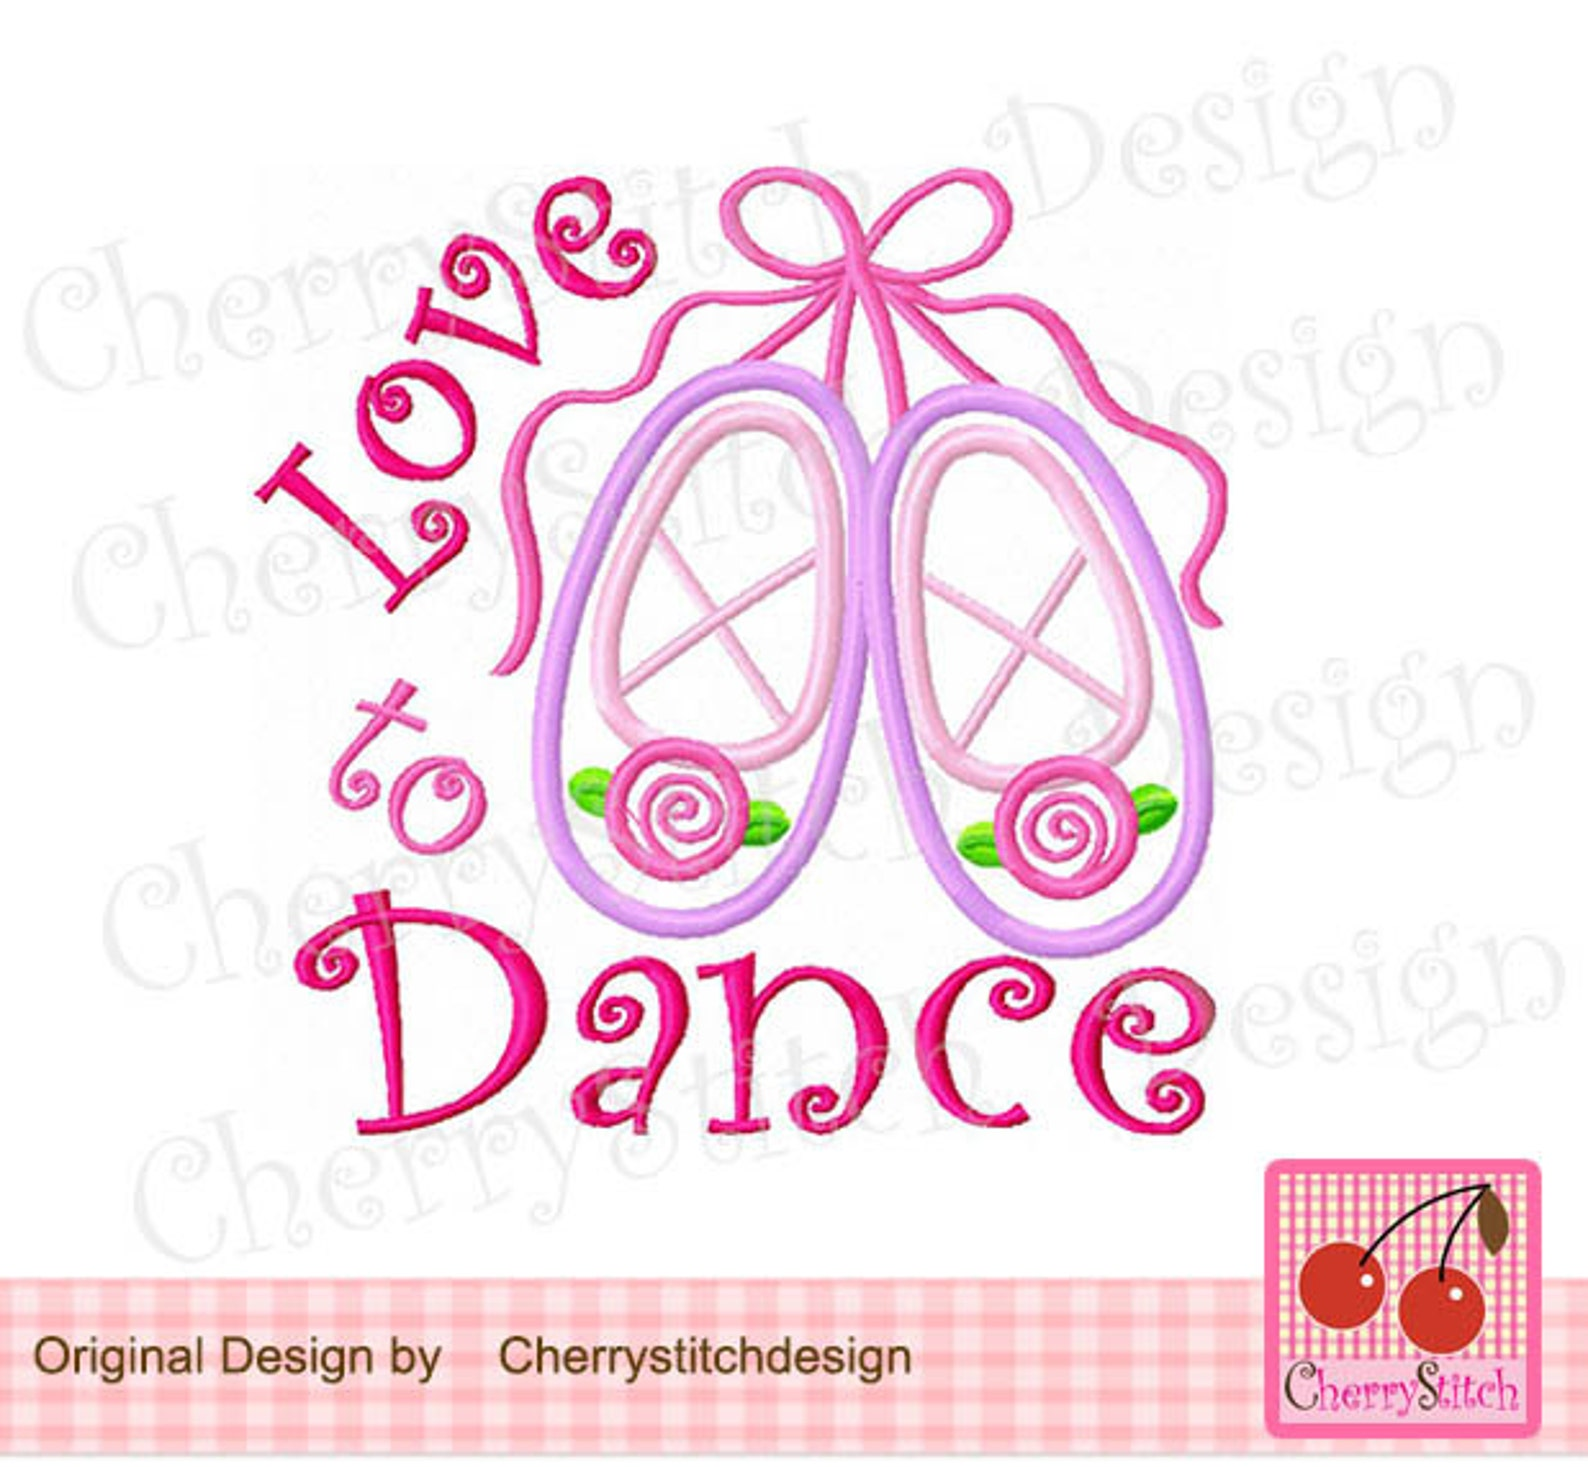 ballet slippers, love dance embroidery applique design -4x4 5x5 6x6